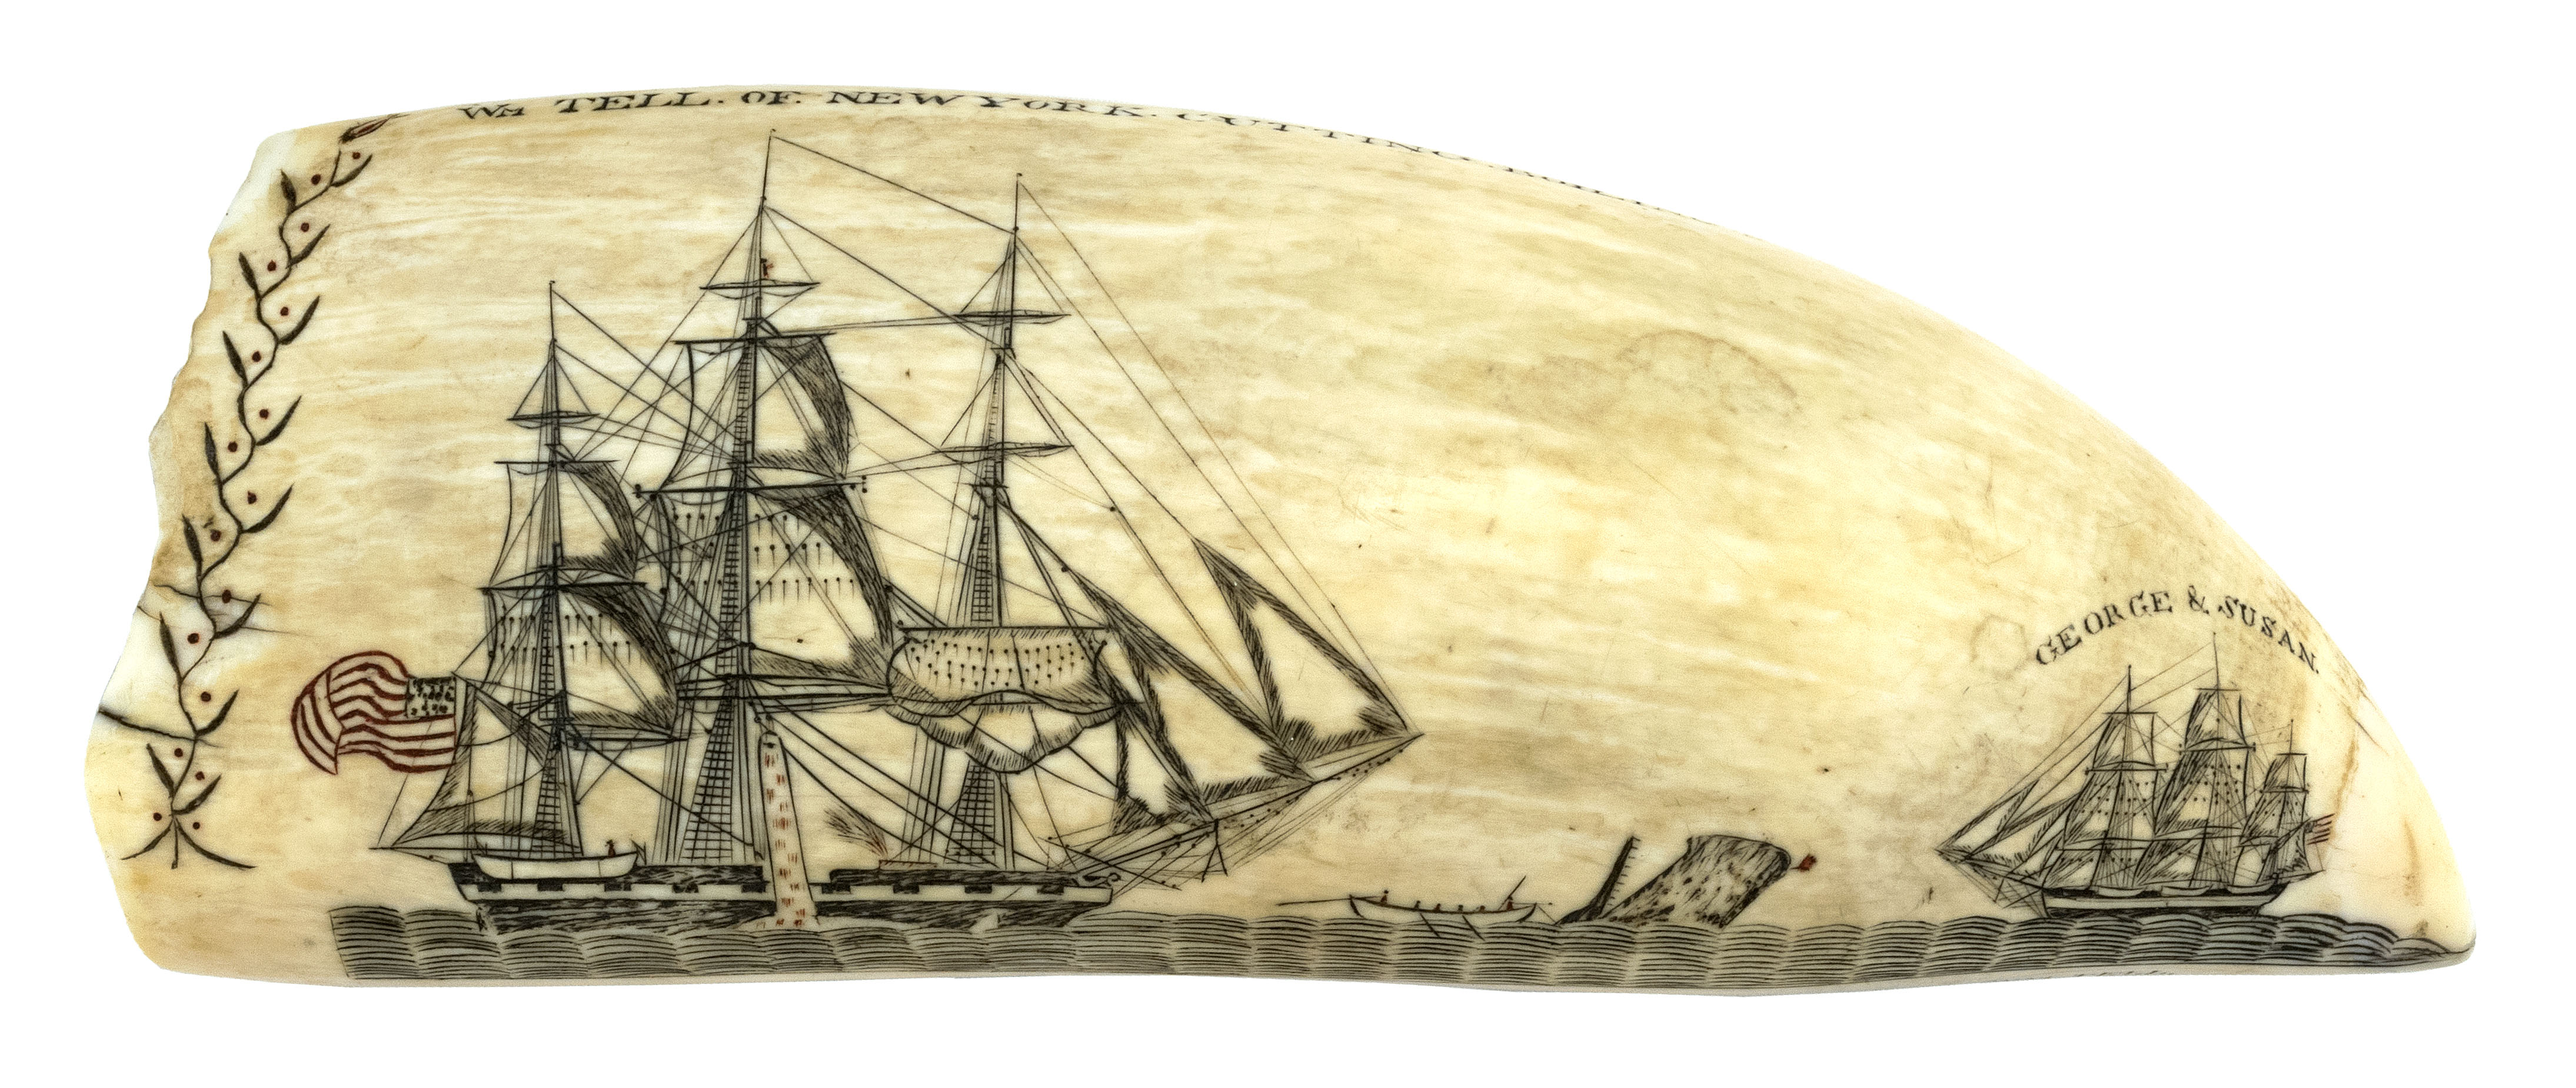 "A scrimshaw whale's tooth by Edward Burdett, made in the early 1830s and inscribed, in block letters, ""Engraved by Edward Burdett of Nantucket Onboard the Ship William Tell."" It shows a scene of the William Tell capturing a whale while another ship, the George and Susan, floats nearby. On the back, it shows another whaleship, the William Thomson, sailing near a coastline."